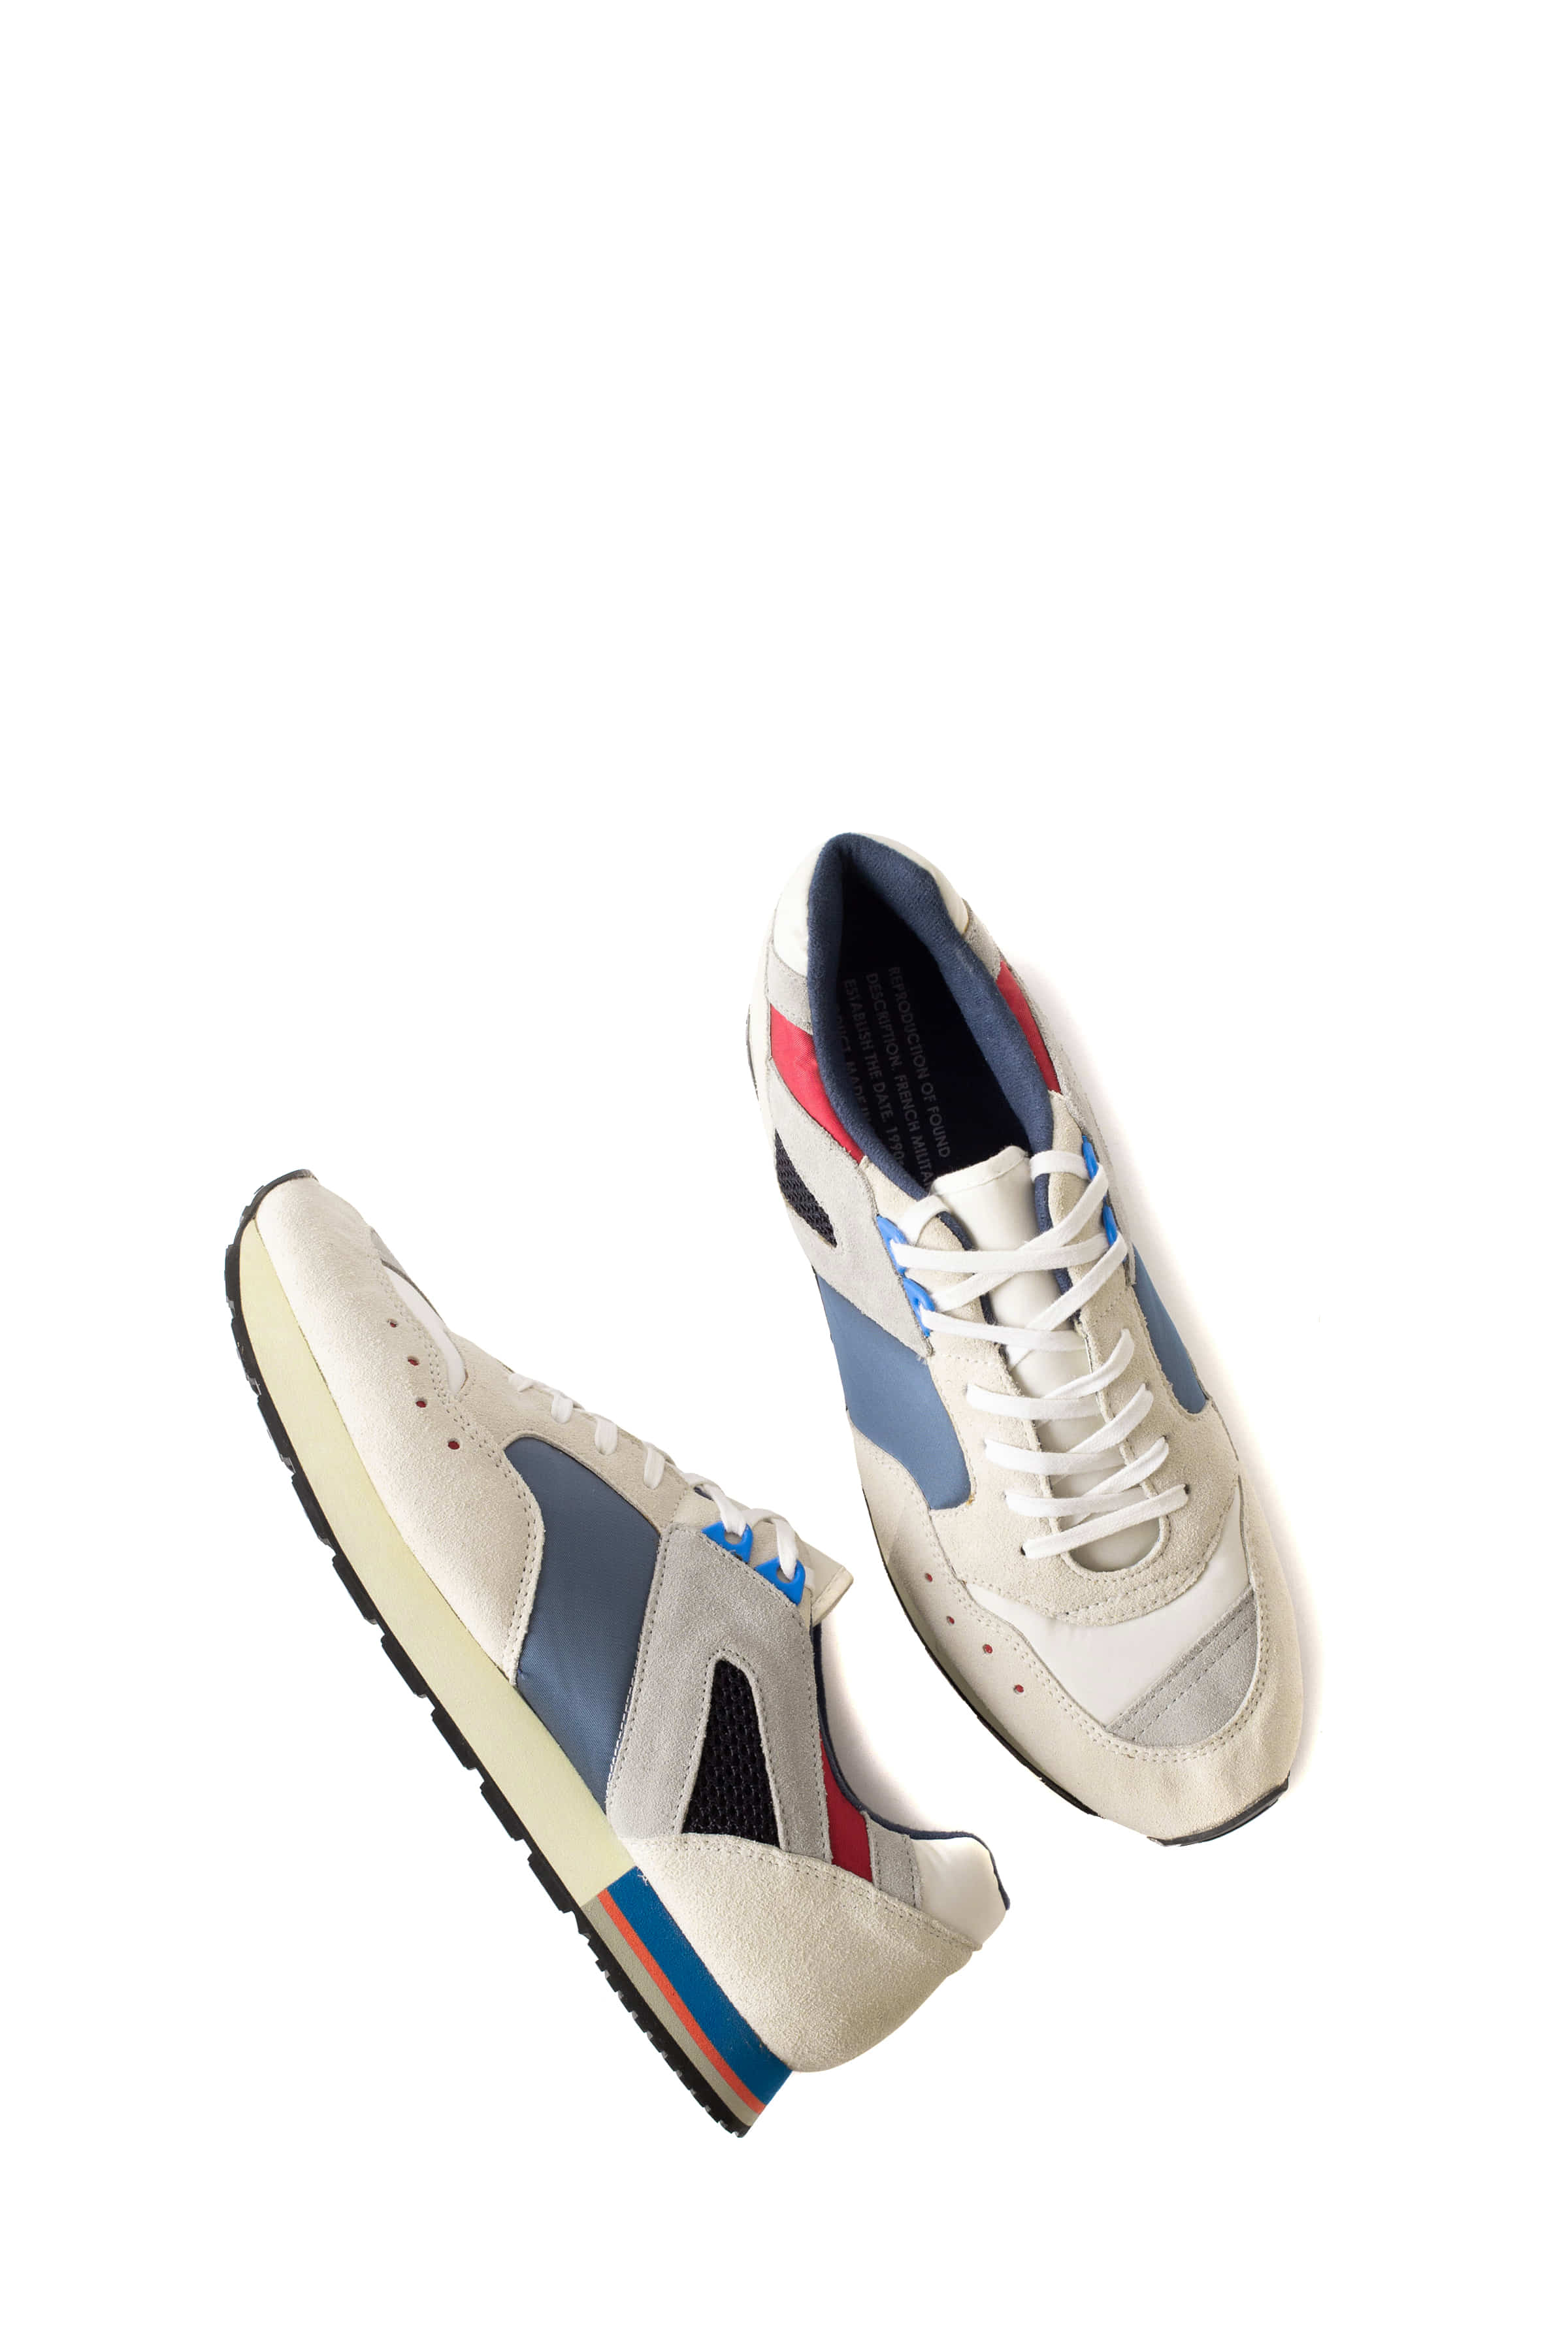 REPRODUCTION OF FOUND : French Military Trainer (White)